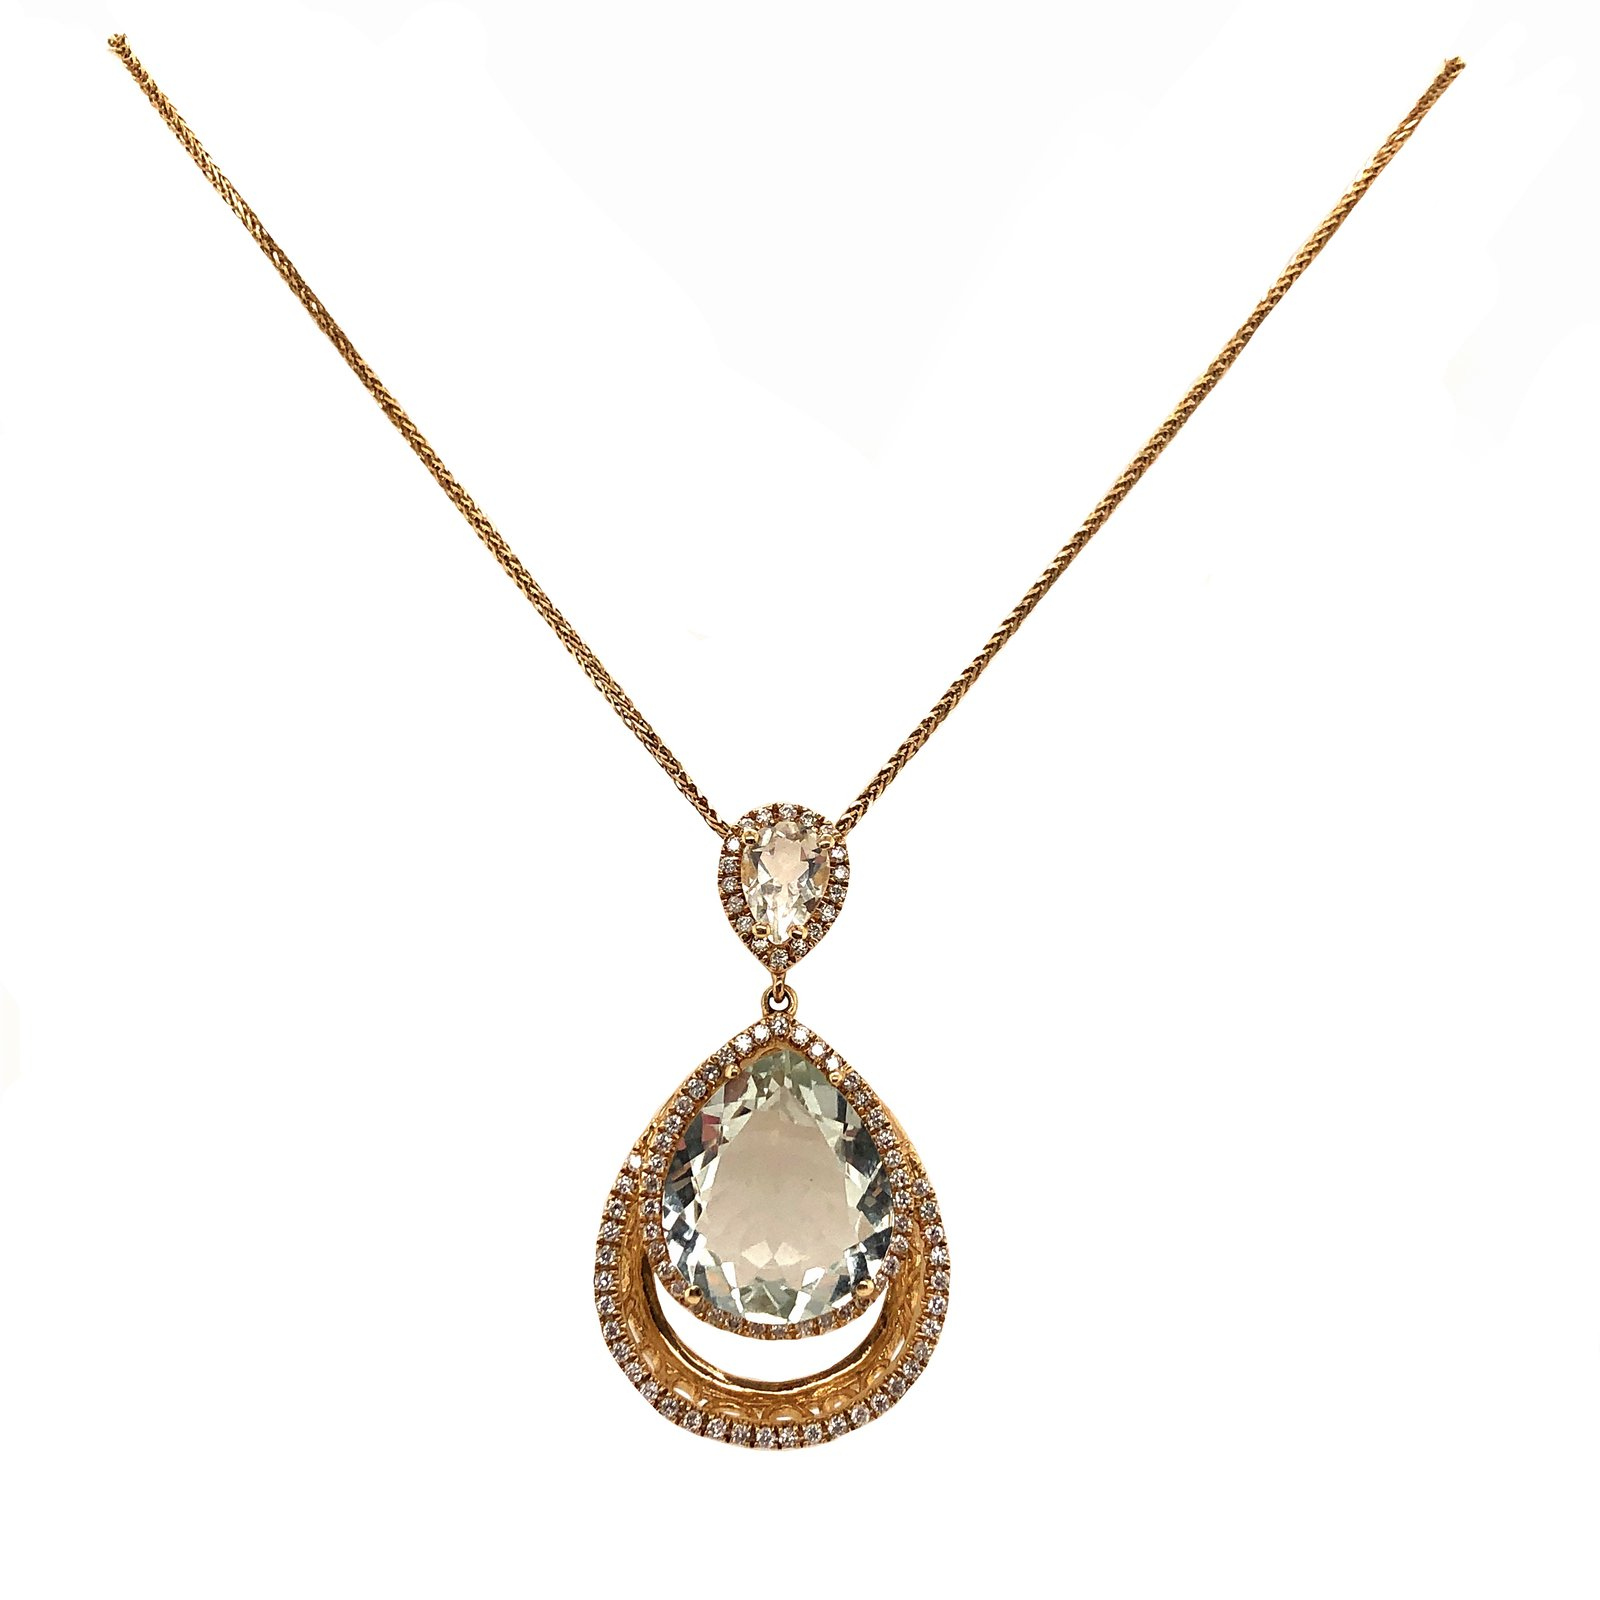 Dangling Pendant Light Green Quartz and Diamond Halo Pendant 14K Yellow Gold